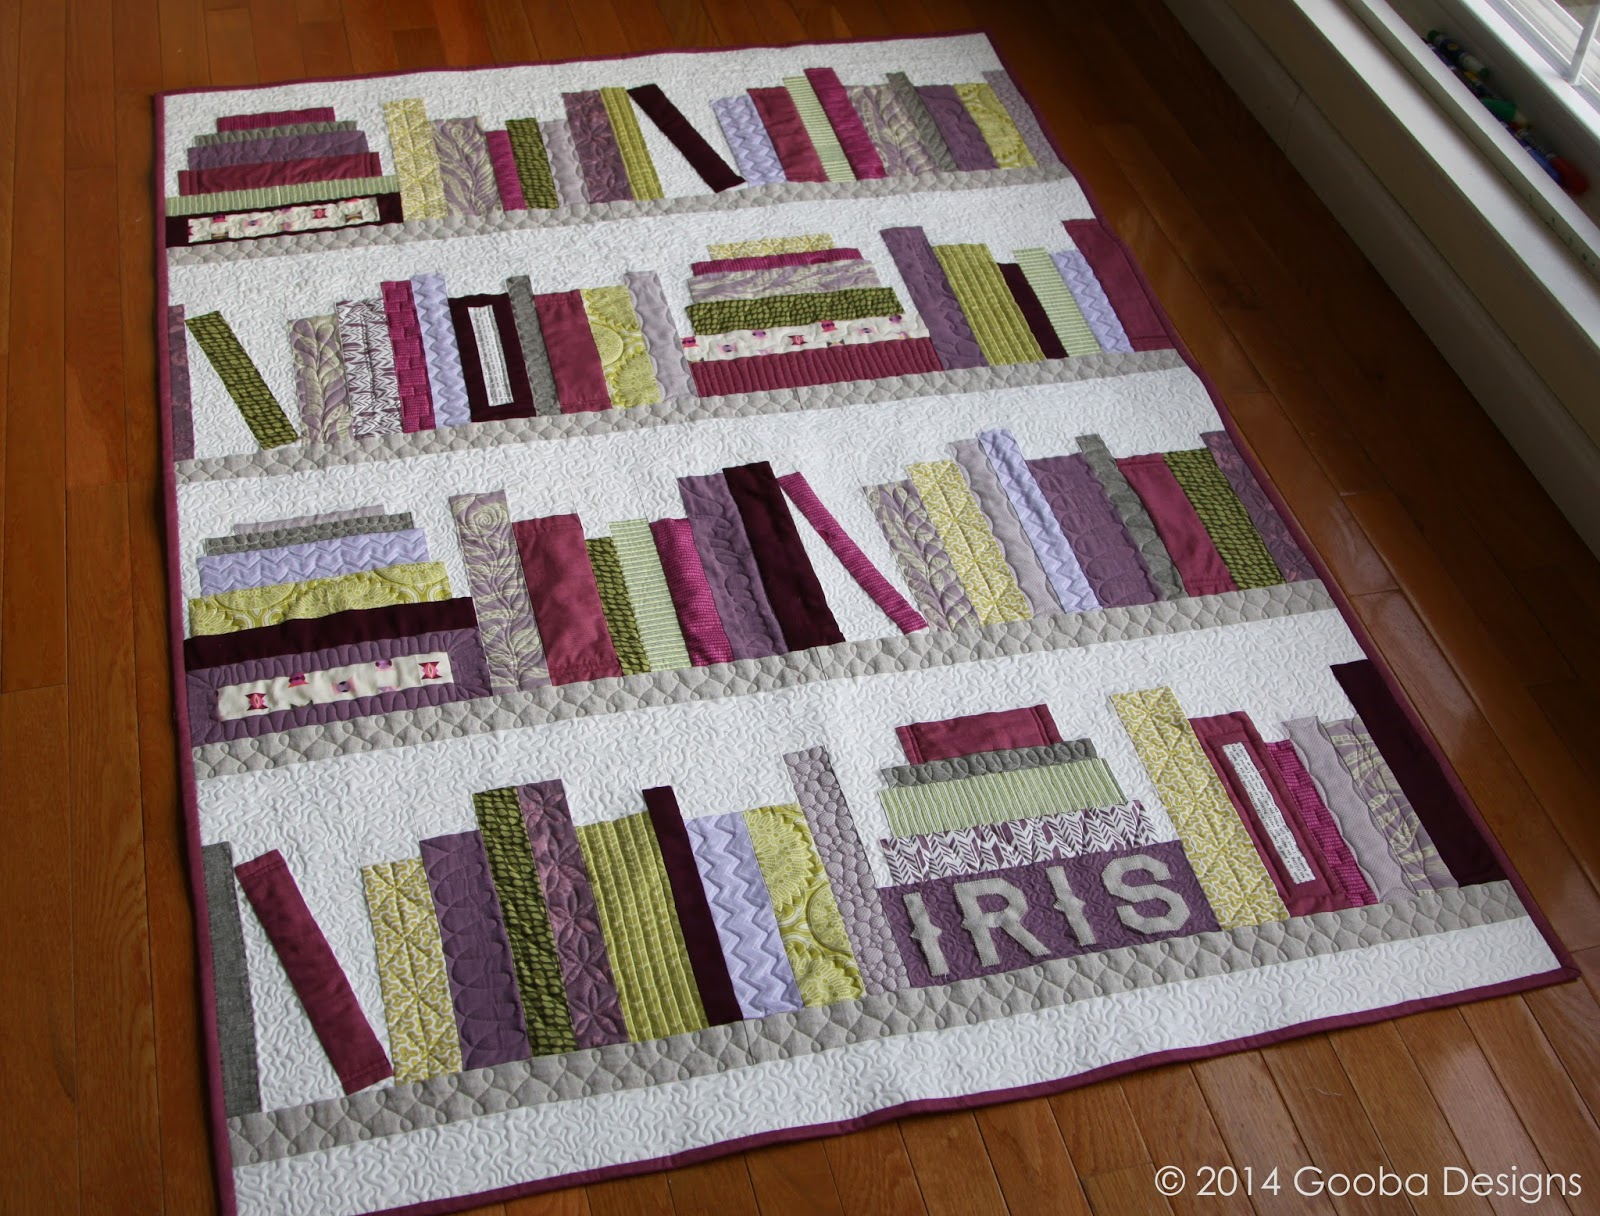 Gooba Designs: First Friday Finish of 2014: The Book Quilt